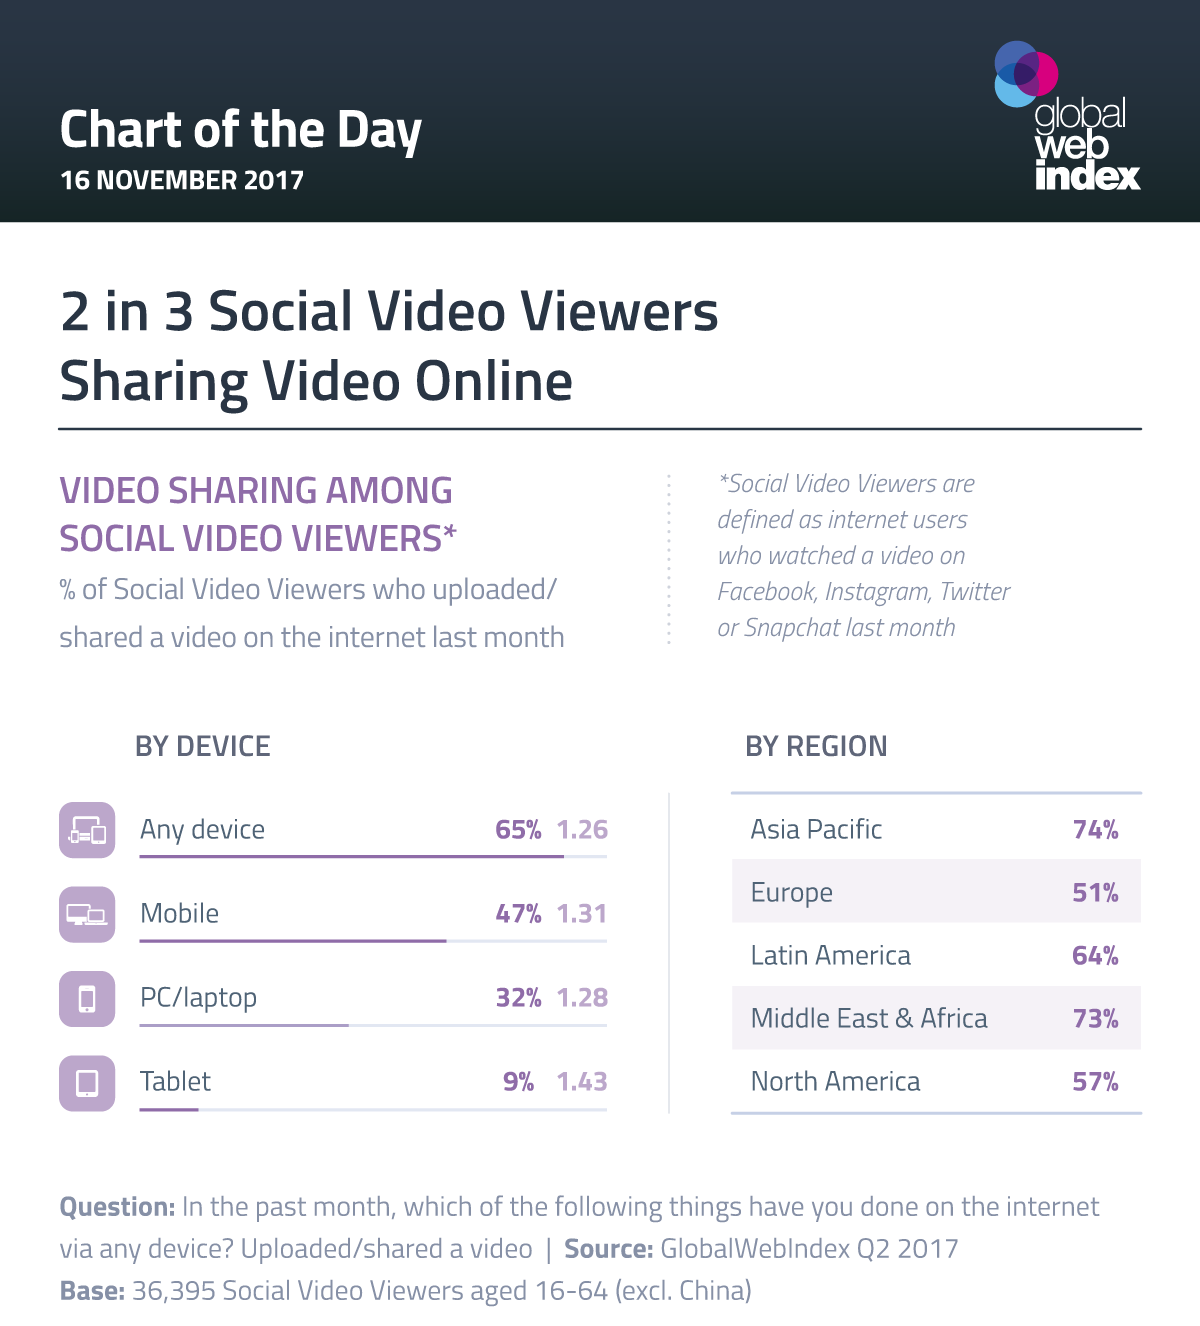 2 in 3 Social Video Viewers Sharing Video Online